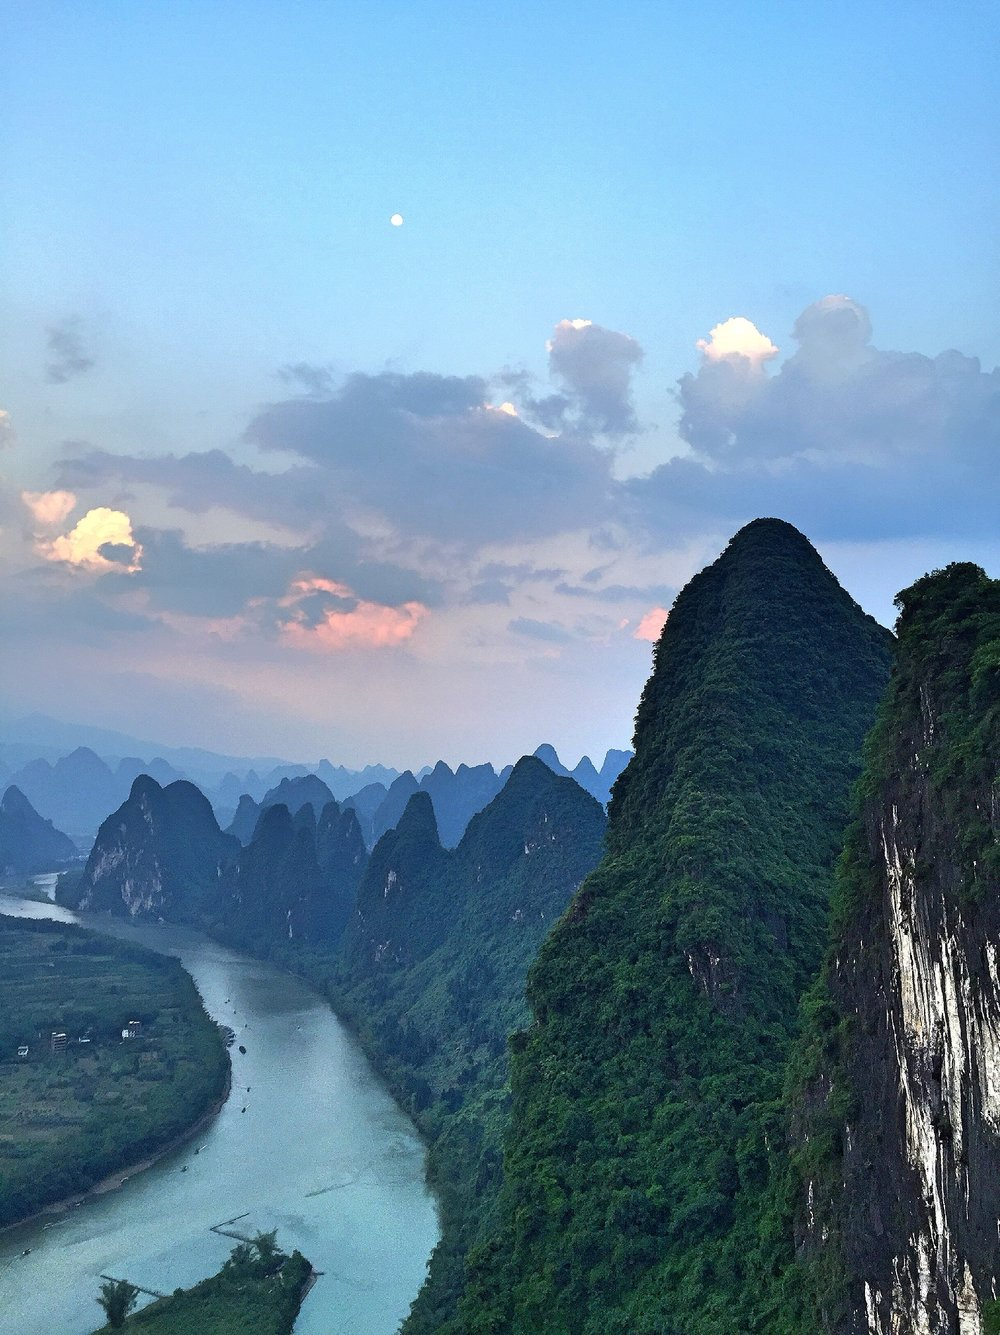 Dusk over Yangshou, China